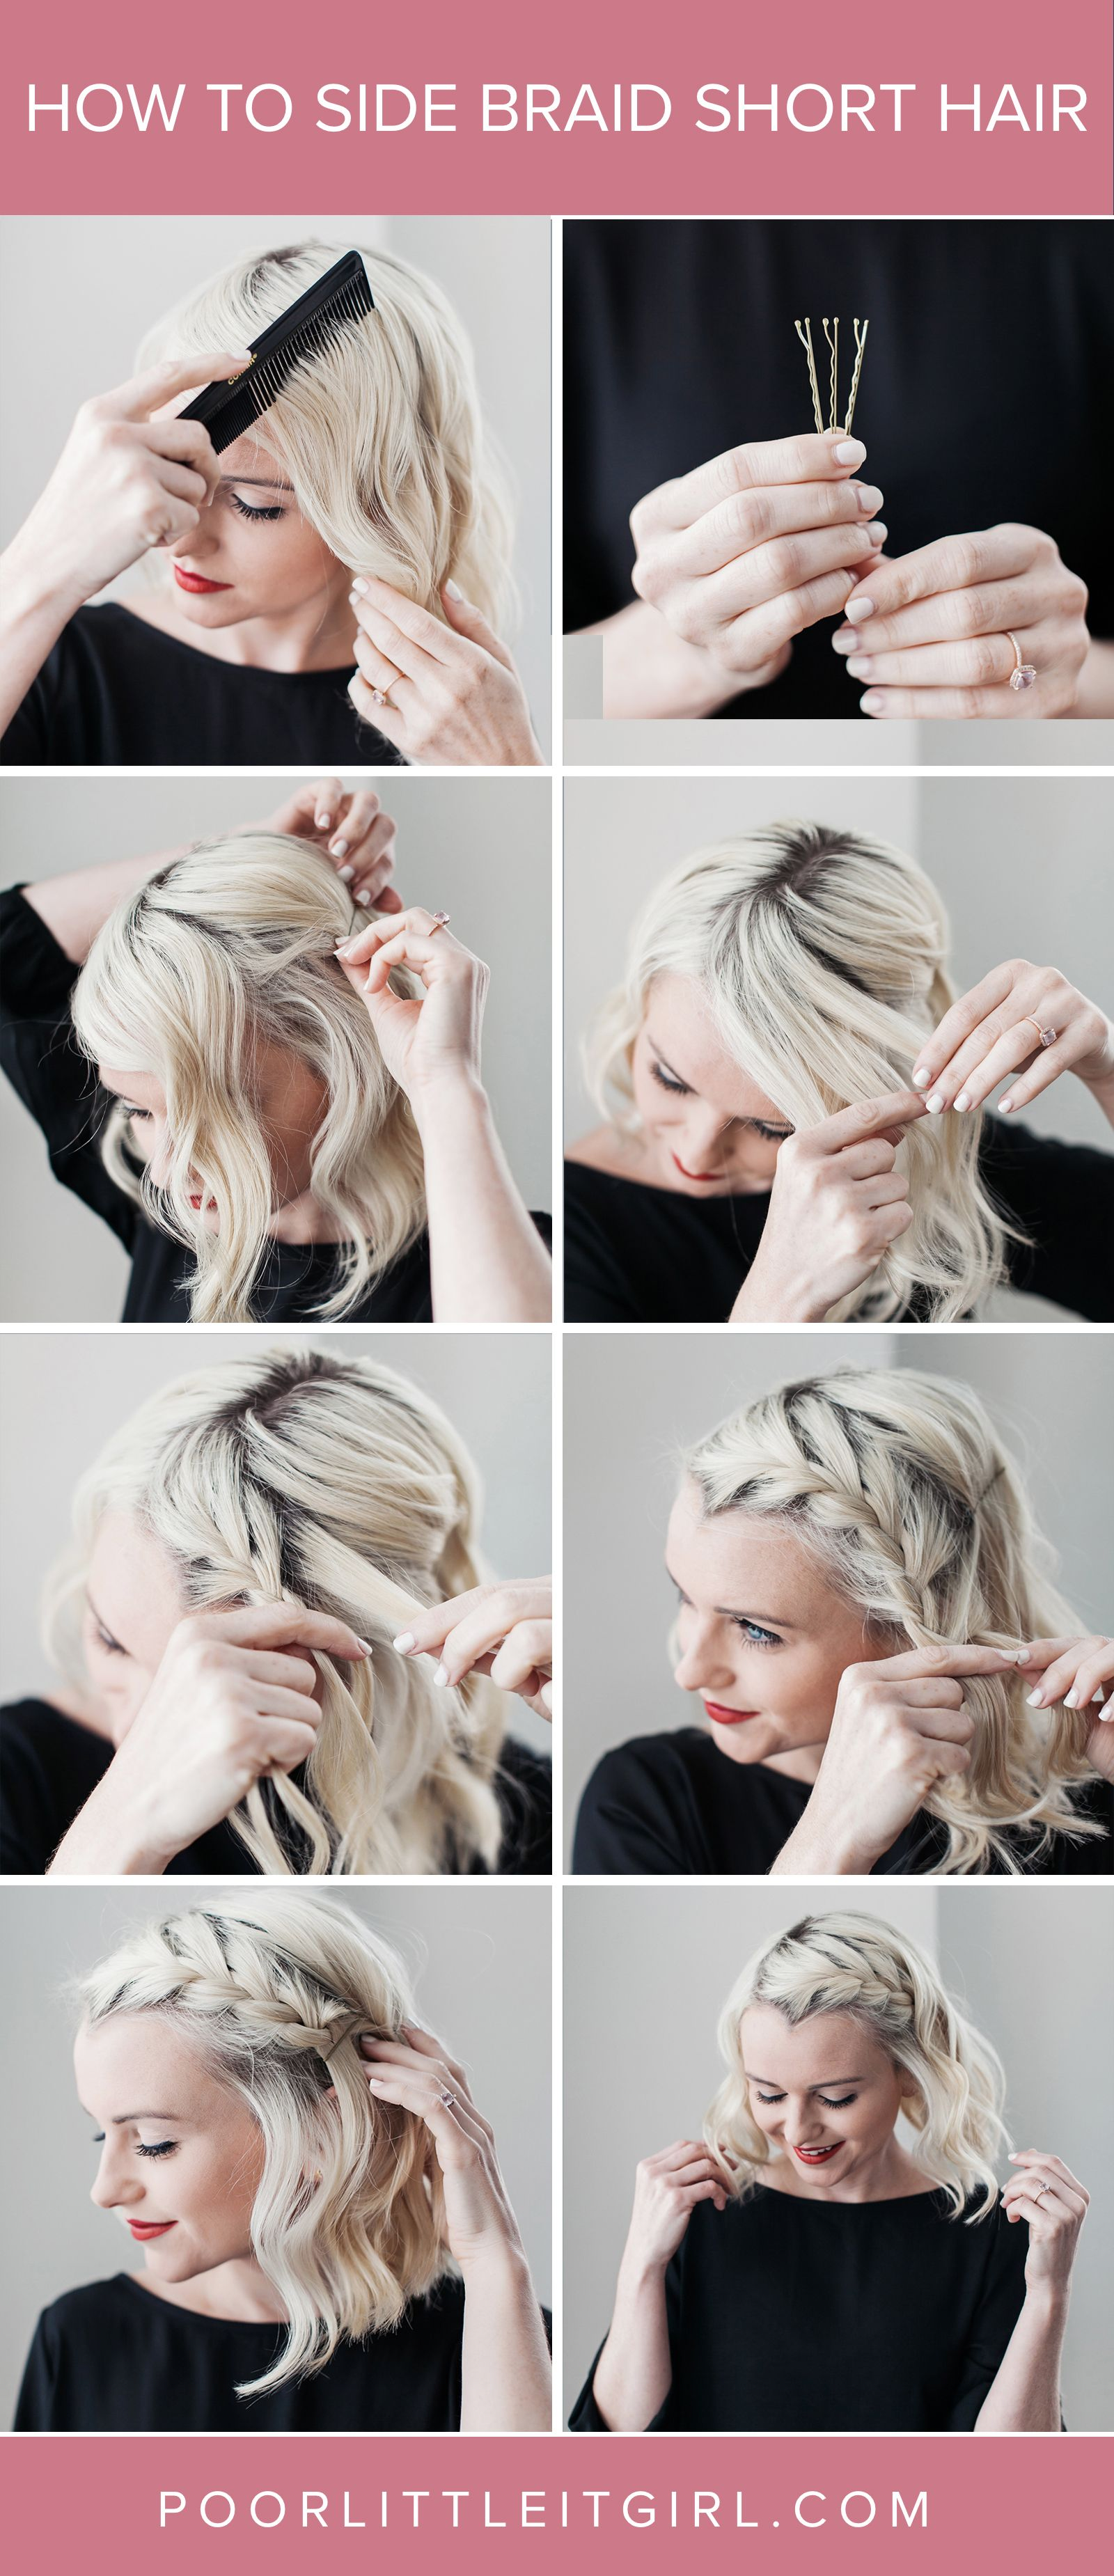 How To Do A Side Braid On Short Hair Hair Color Cuts Styles